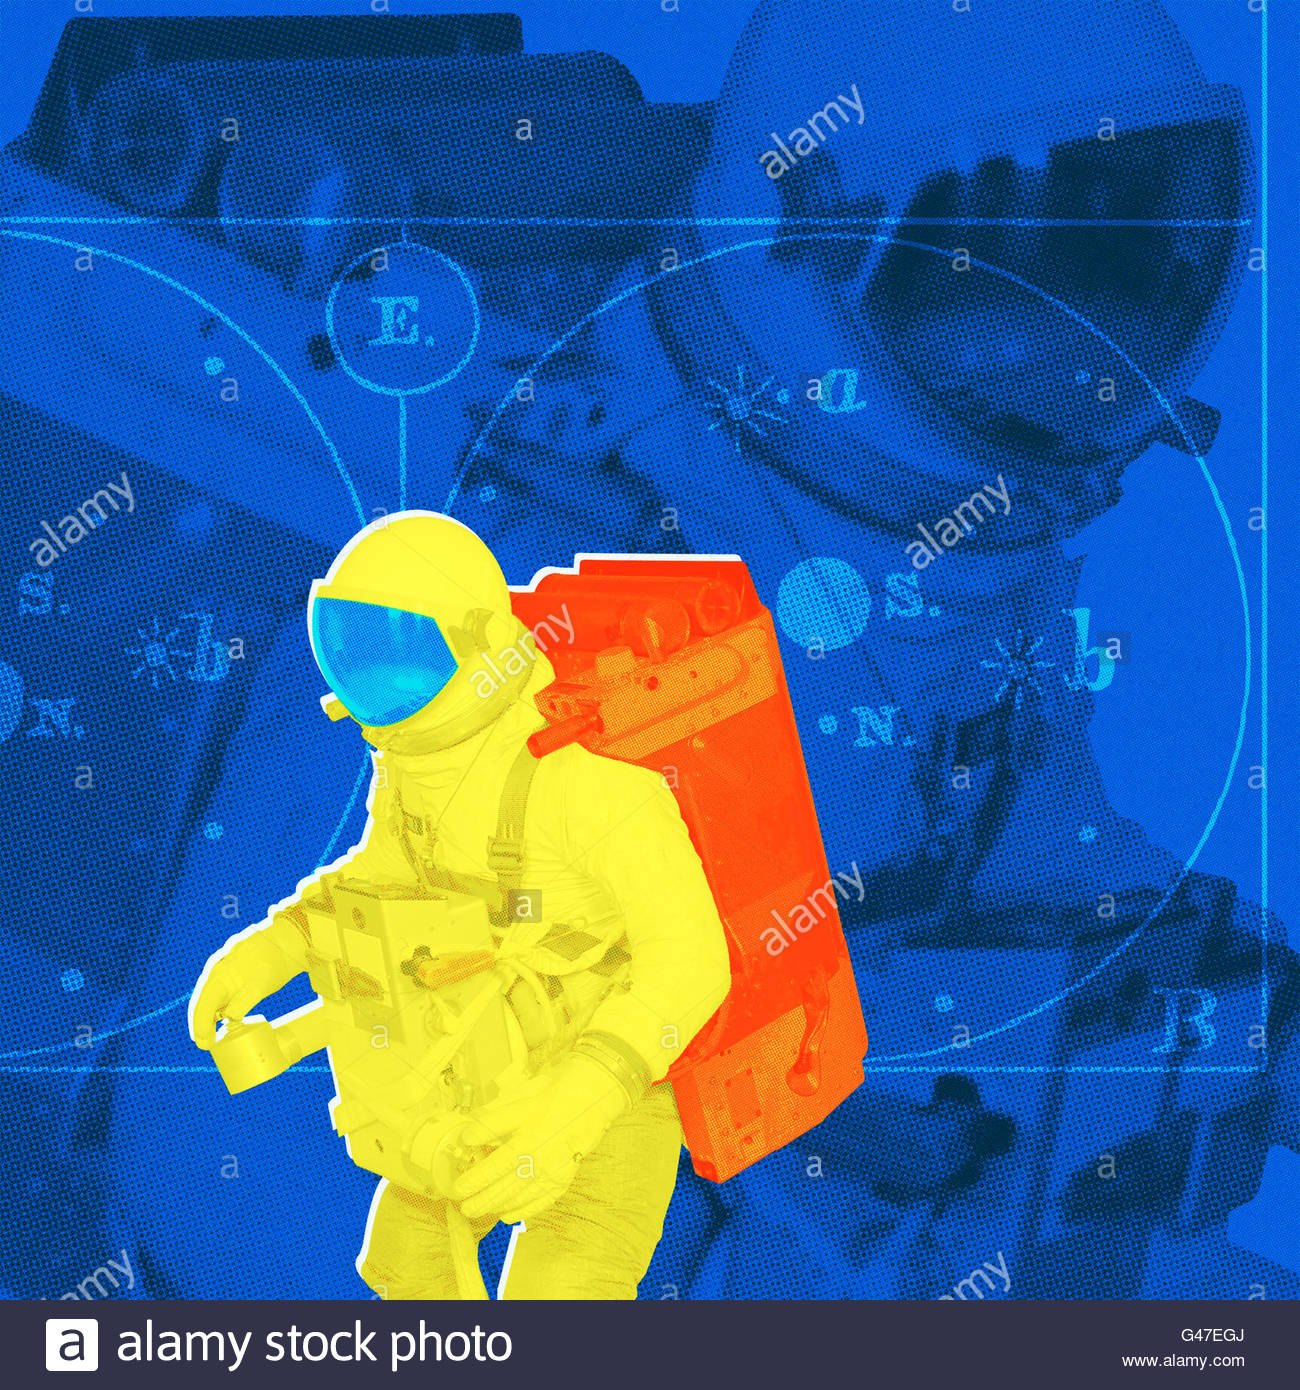 retro spaceman space walk anti gravity photo illustration - Stock Image